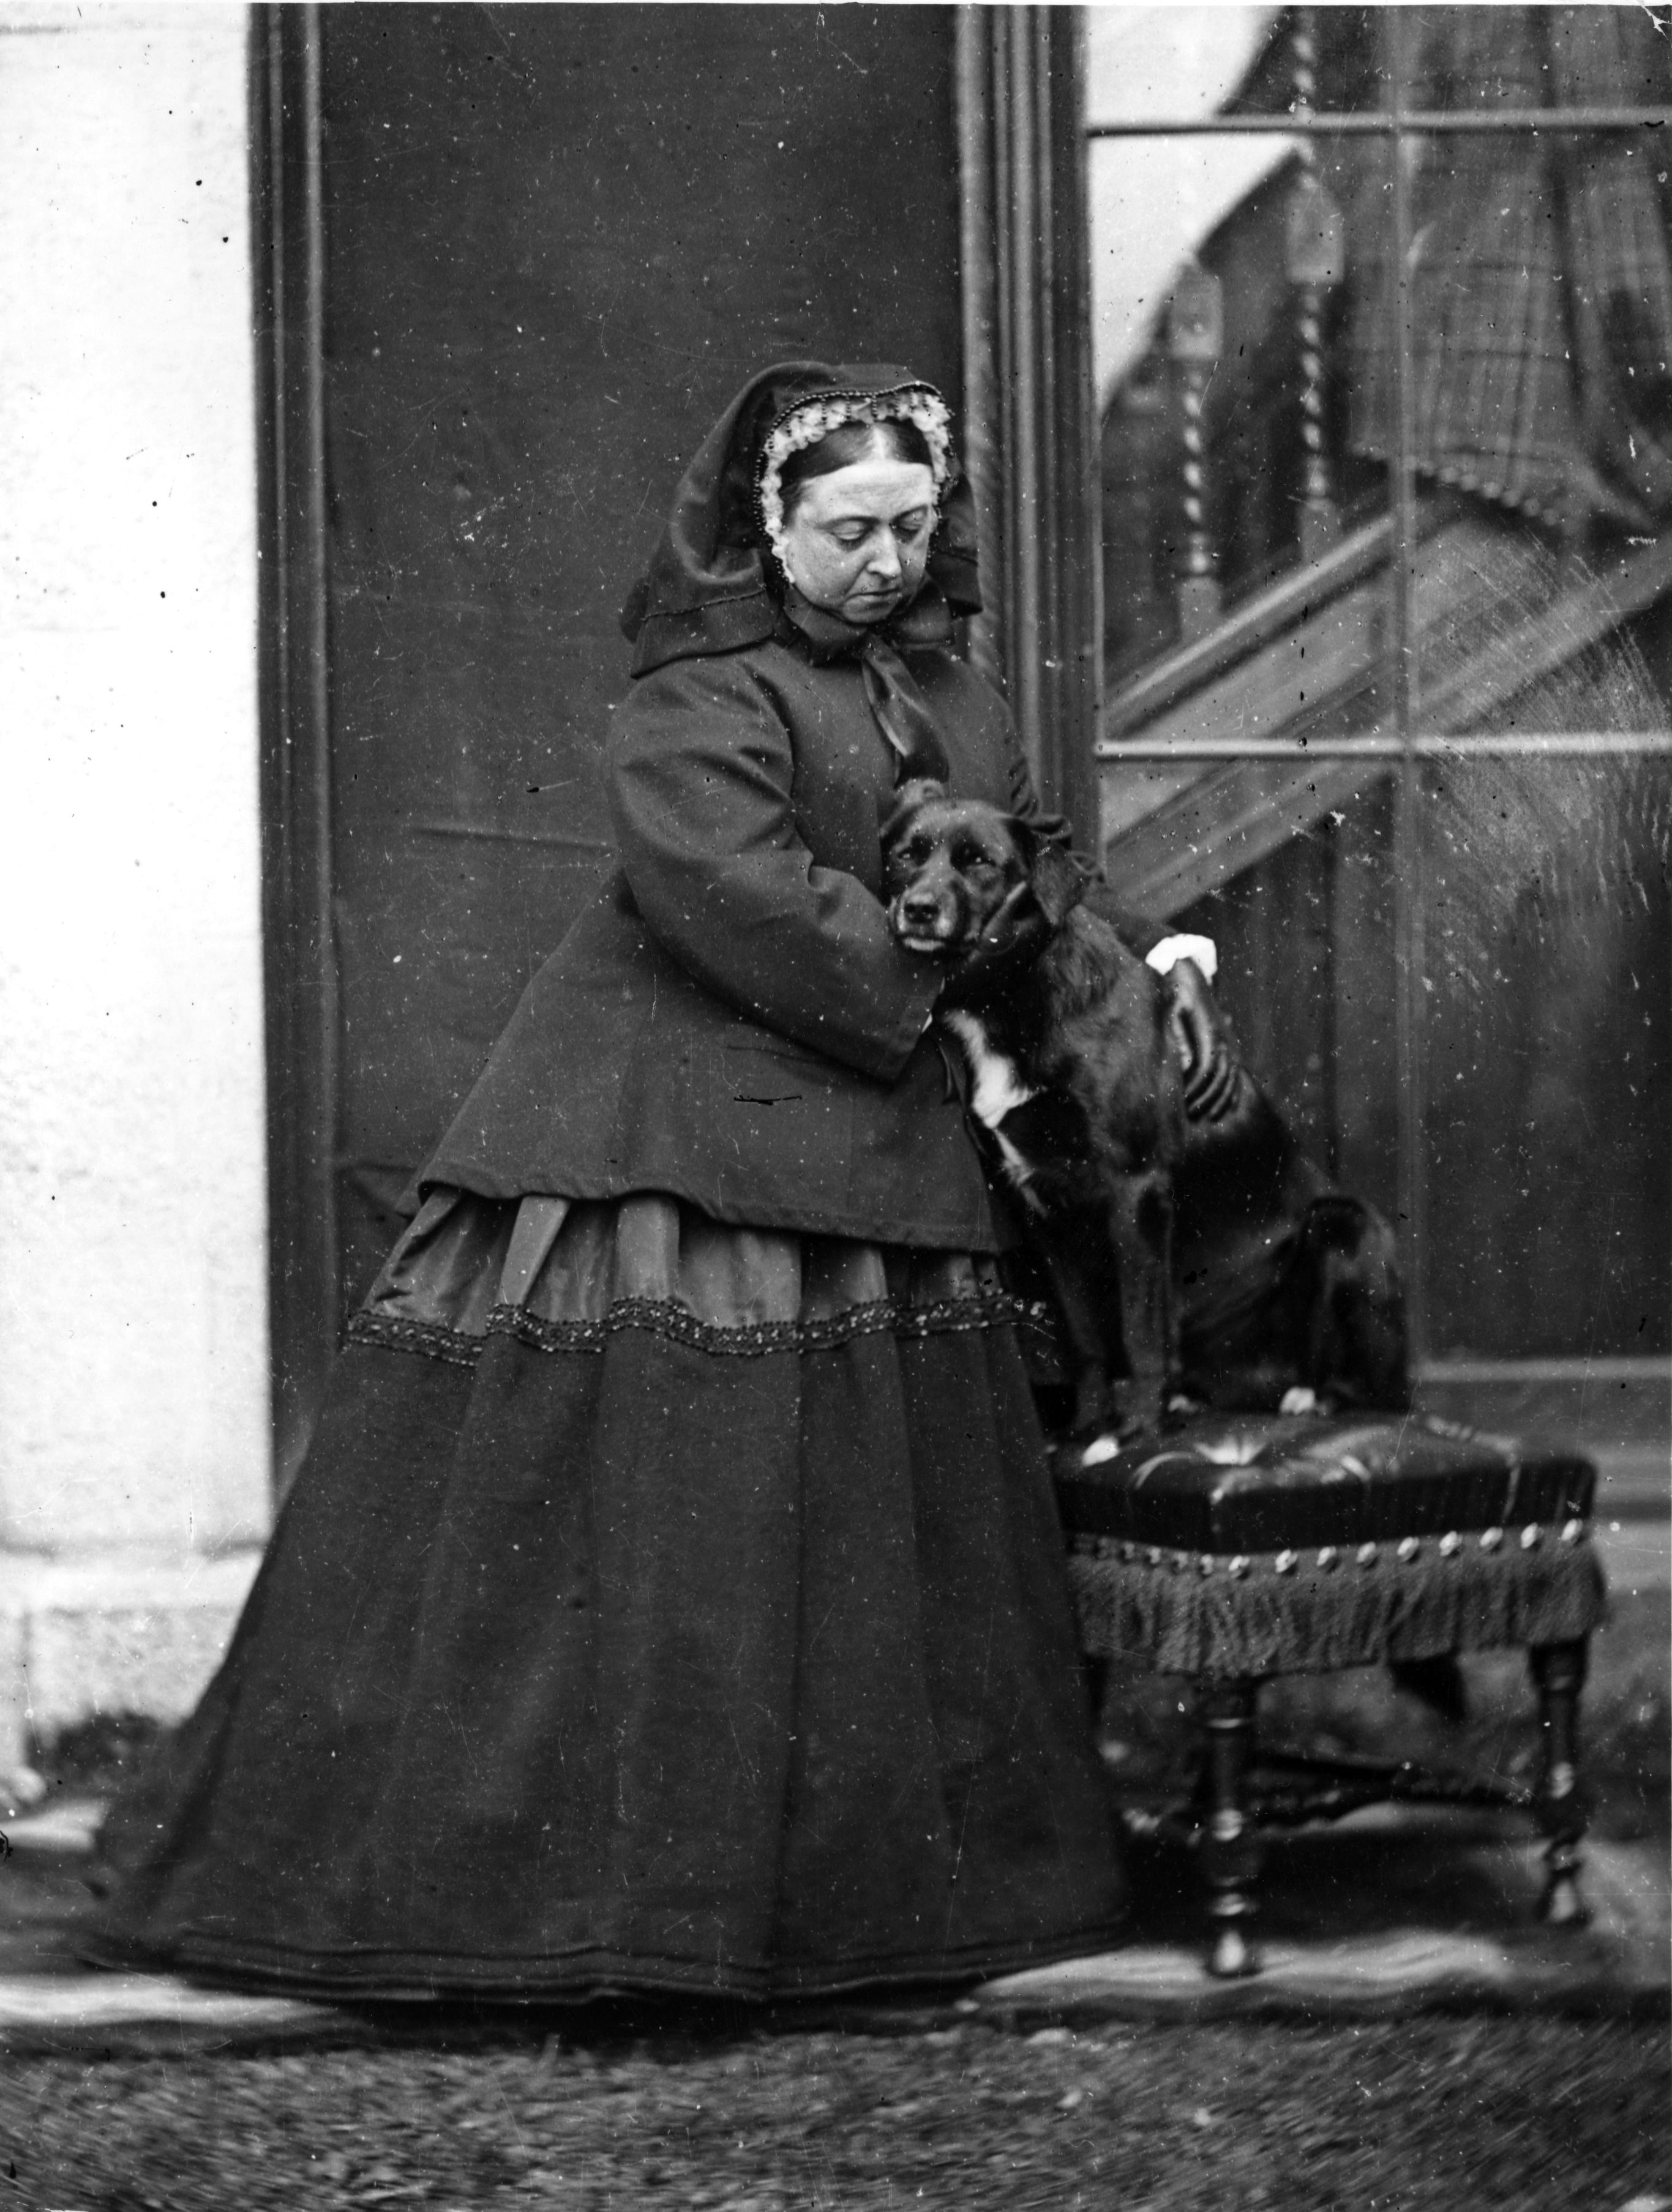 Queen Victoria of Great Britain with her pet dog 'Sharp' in 1867 at Balmoral Castle in Scotland.